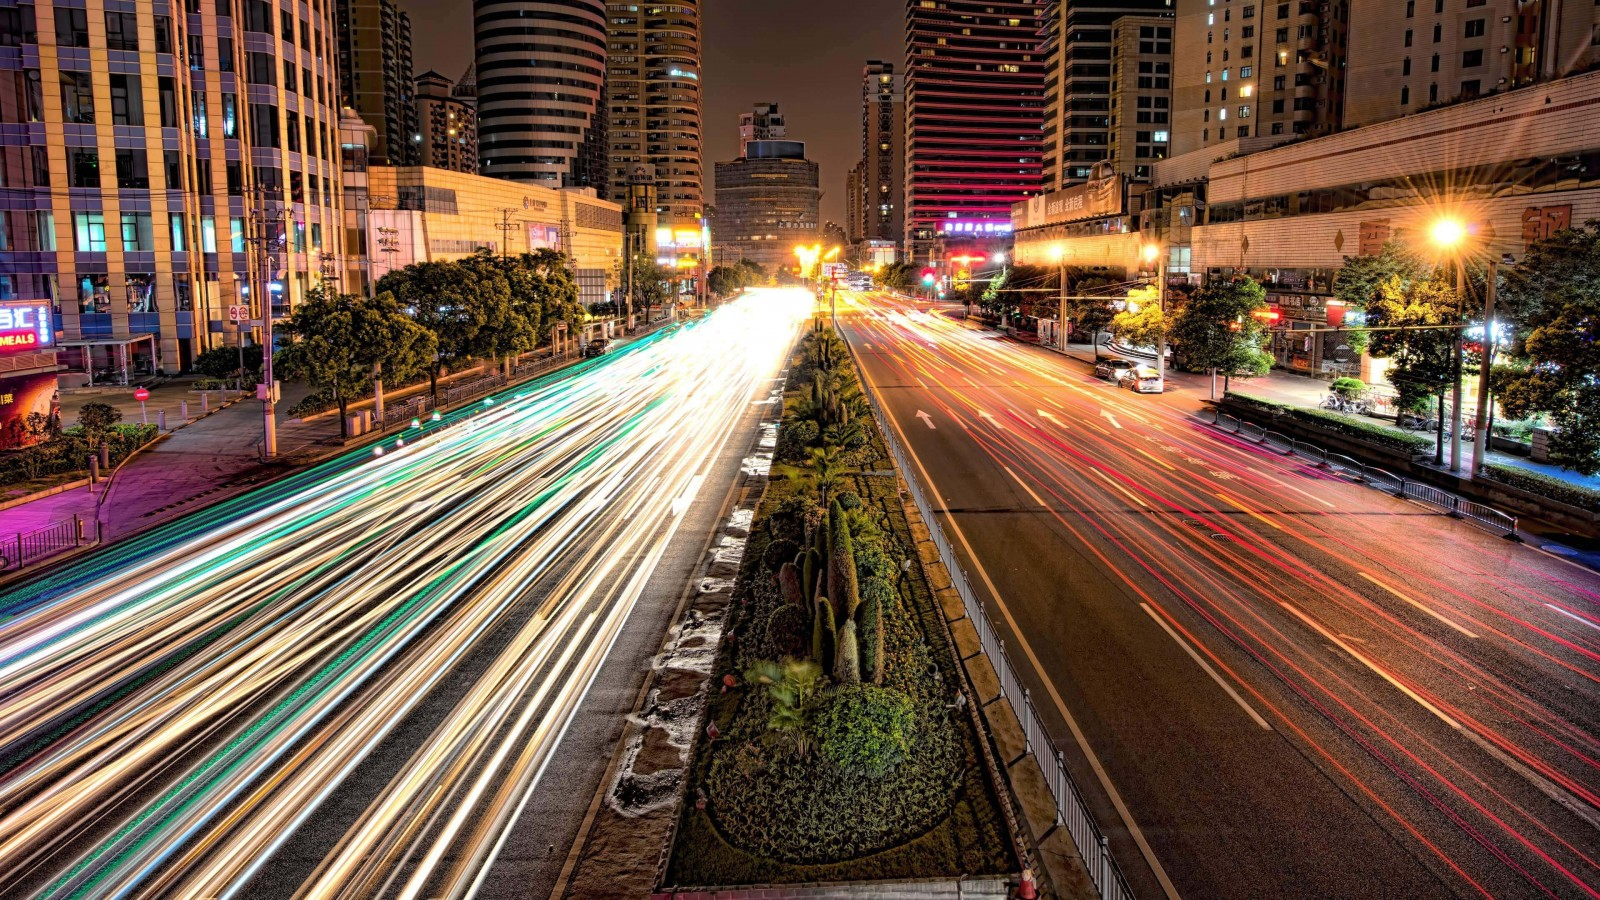 Busy Road in Shanghai at Night Wallpaper for Desktop 1600x900